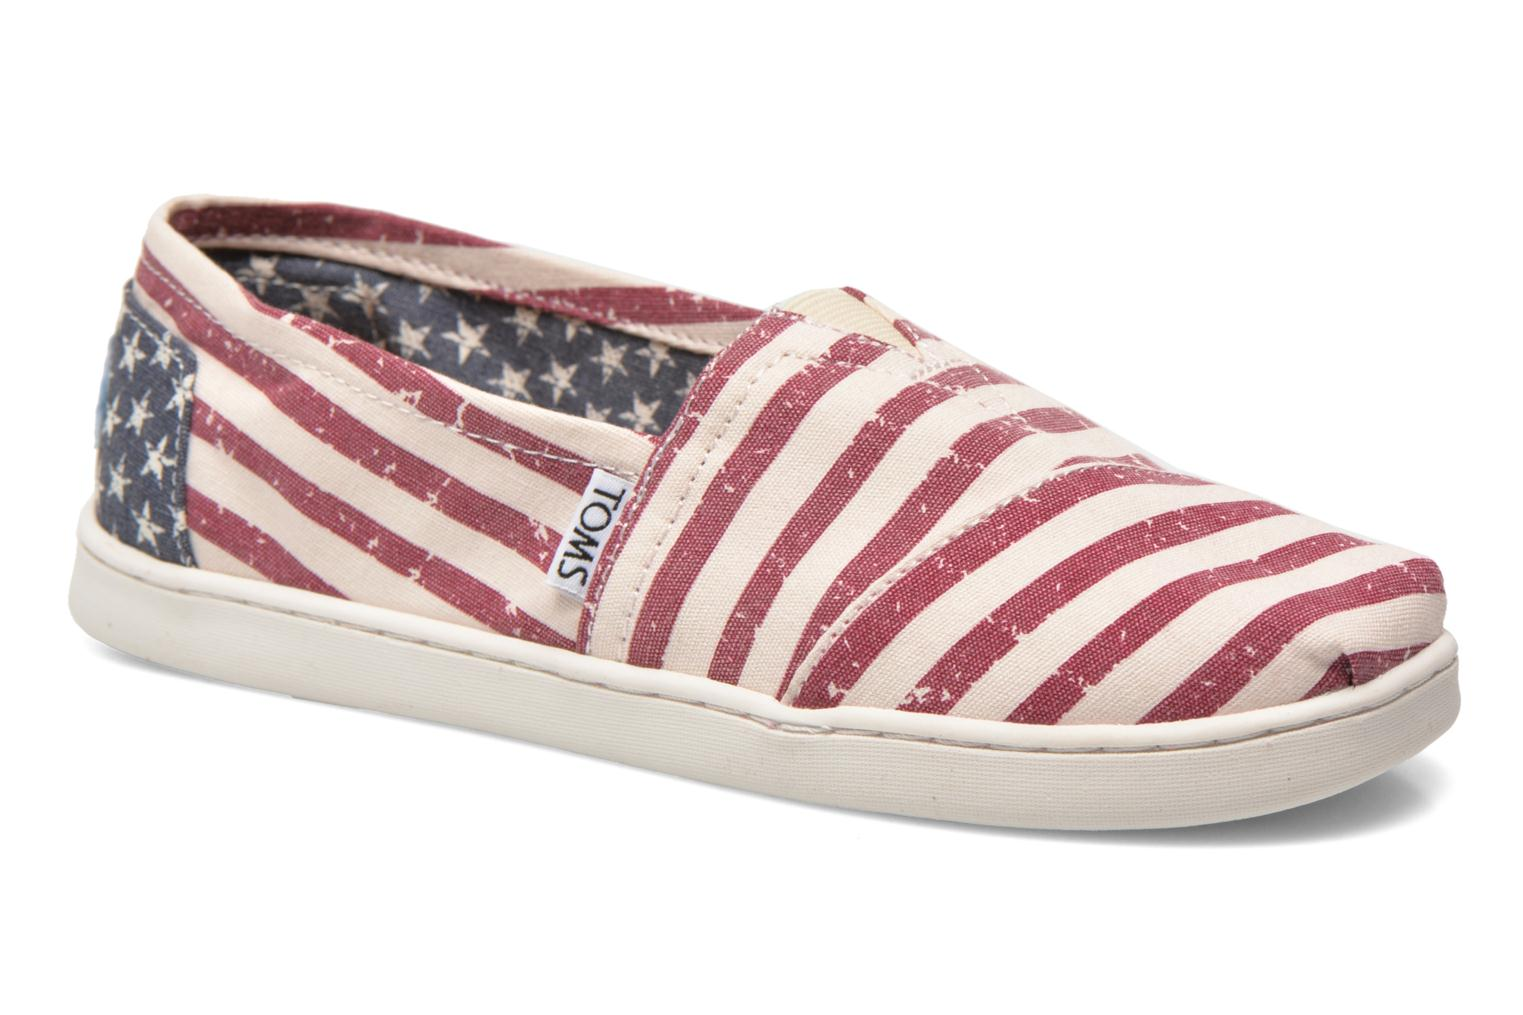 Baskets TOMS Seasonal Classics Multicolore vue détail/paire